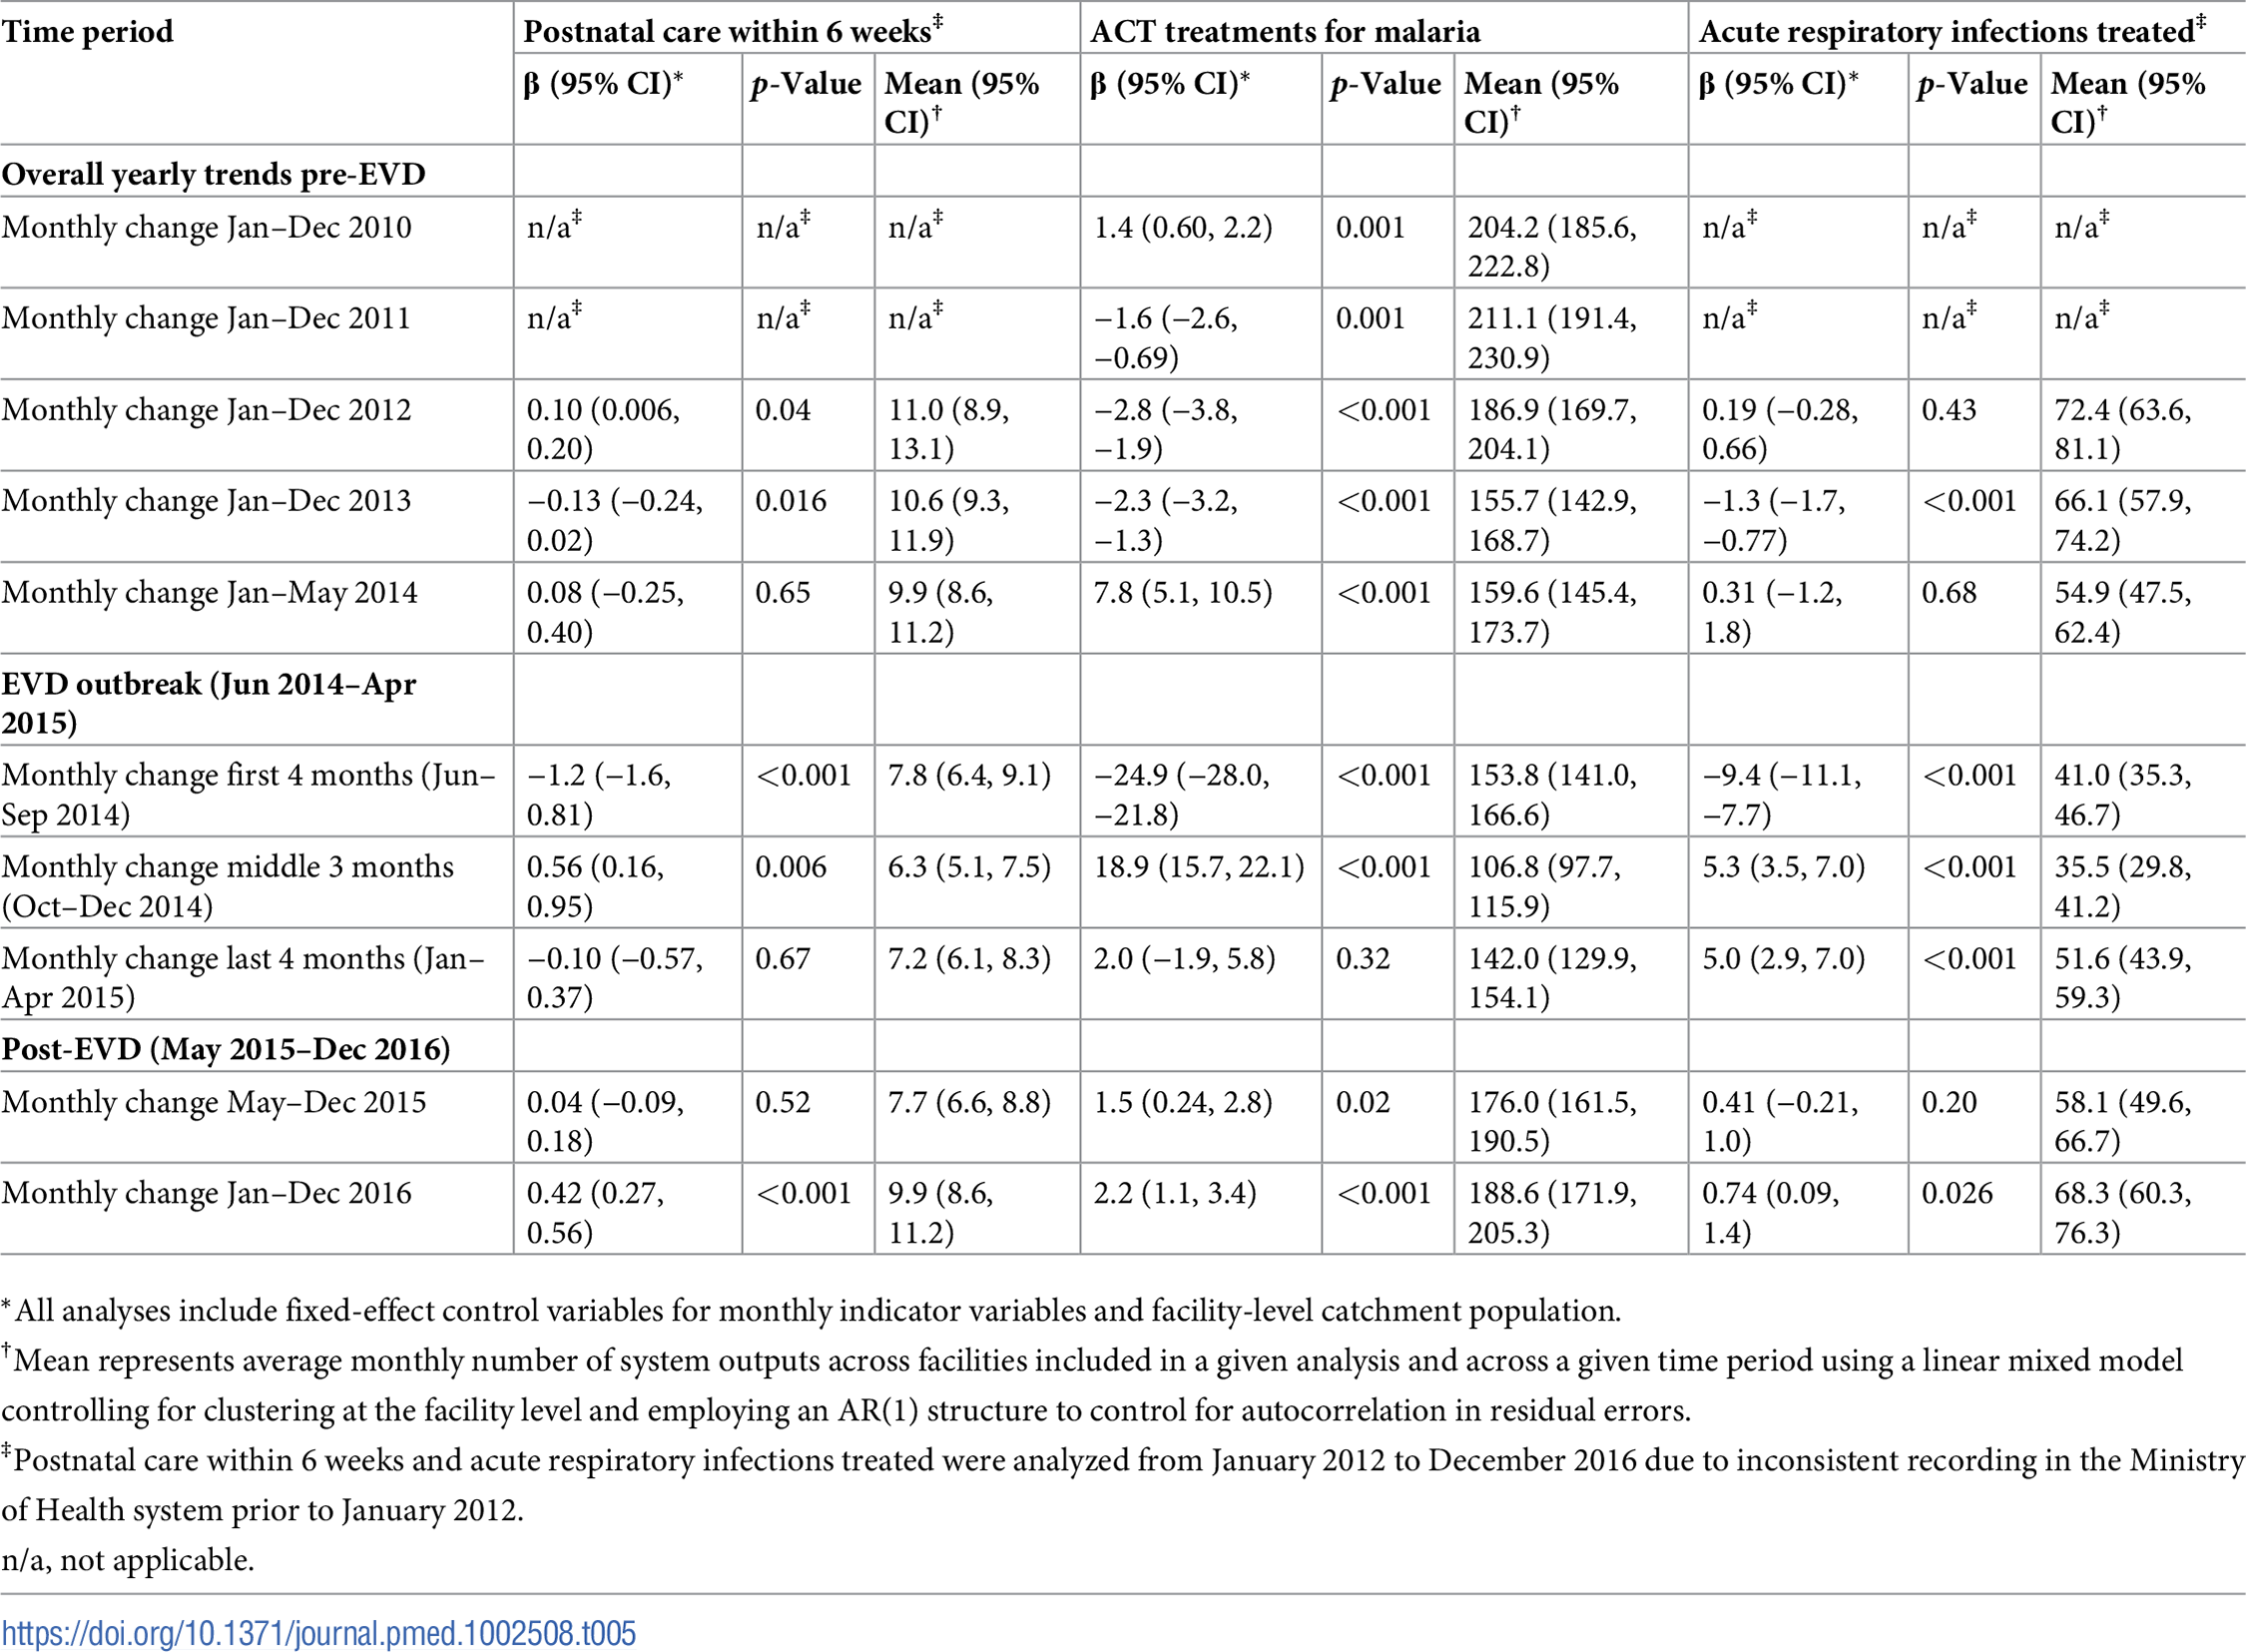 Parameter estimates and system losses due to Ebola virus disease (EVD) outbreak (June 2014–April 2015) for postnatal care visits within 6 weeks, artemisinin-based combination therapy (ACT) treatments for malaria, and acute respiratory infections treated across a census of clinics providing services in Liberia excluding Montserrado County, 2010–2016.